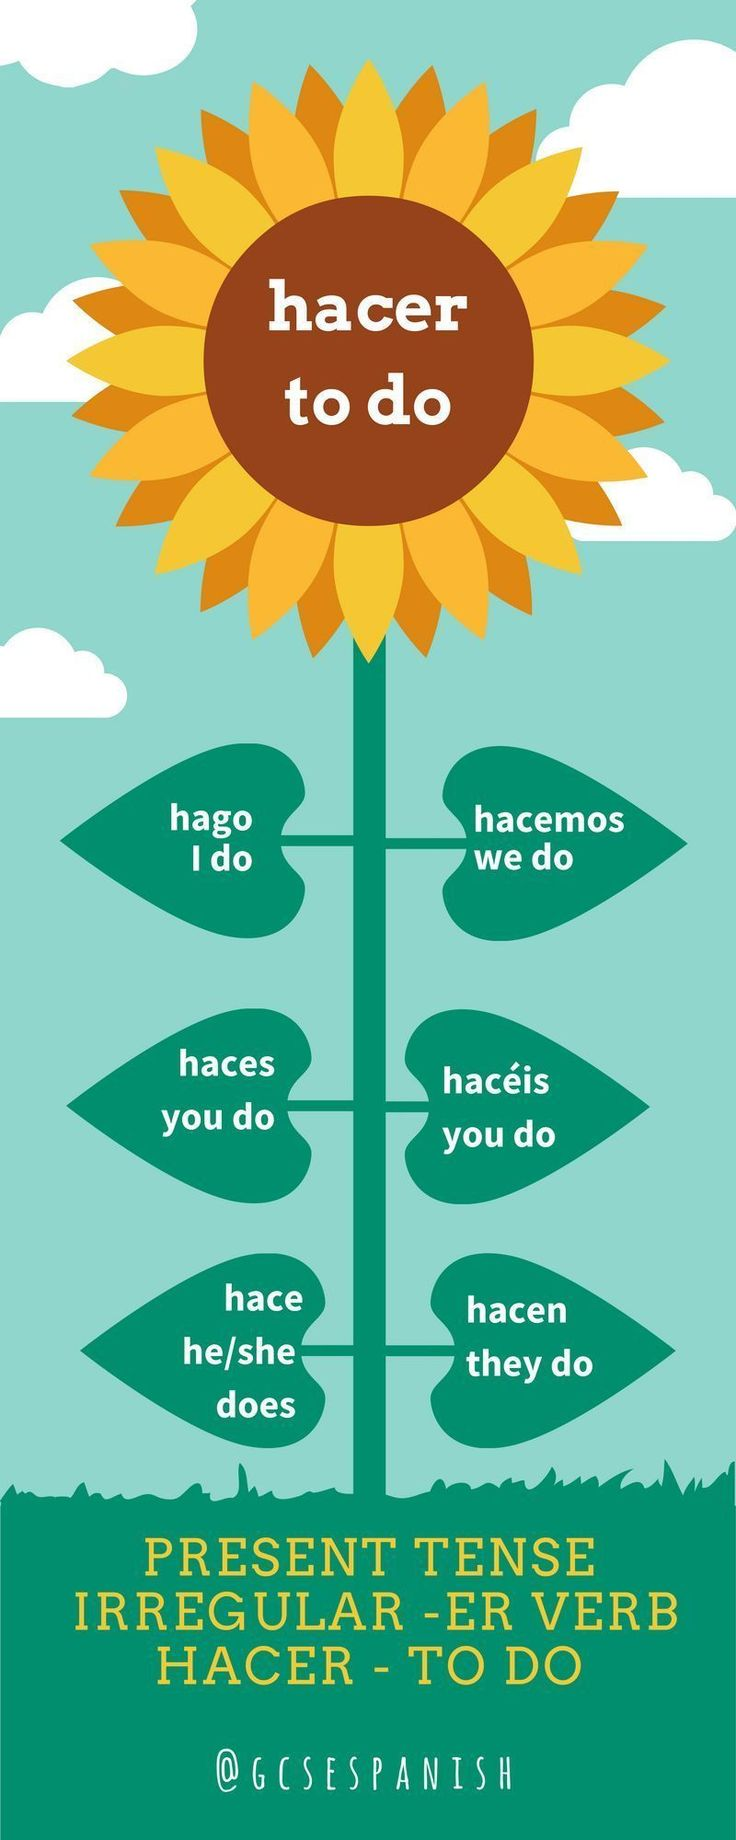 Hacer = to do